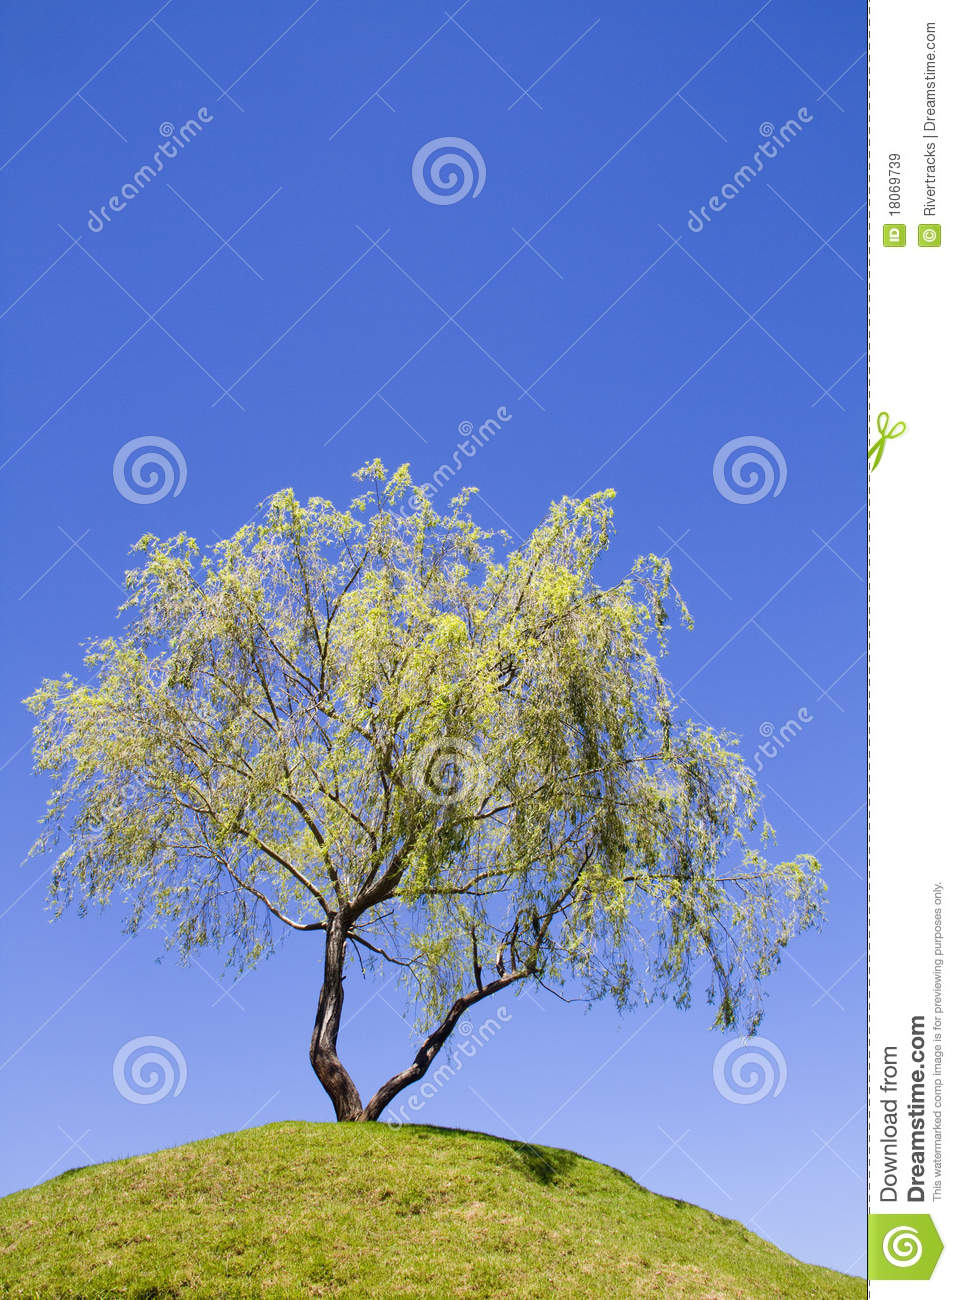 Isolated weeping willow tree on a hill